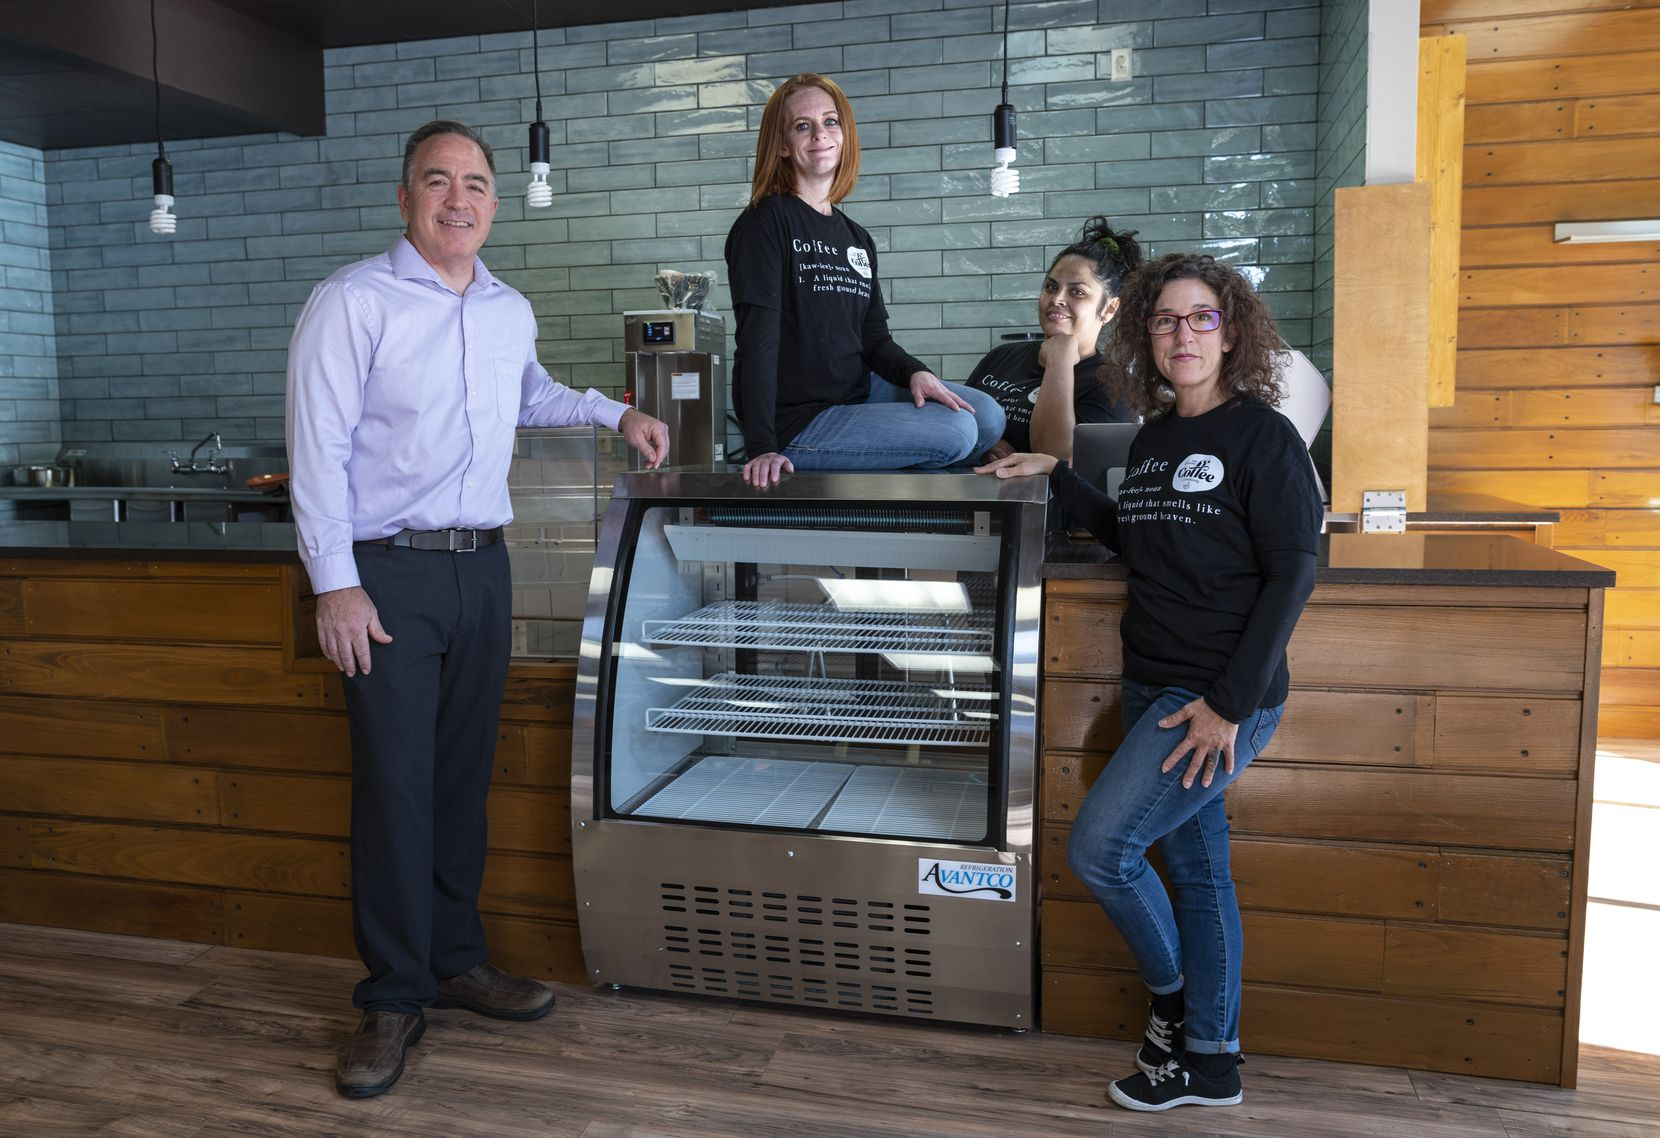 Co-presidents Michael Huscheck (far left) and Natalie Huscheck (far right), with two of their baristas, Natasha Weir (top center) and Maricela Espinosa, are opening Well Grounded Coffee Community in Dallas in mid-December 2020. Well Grounded is a nonprofit shop that employs formerly incarcerated women from Exodus Ministries.